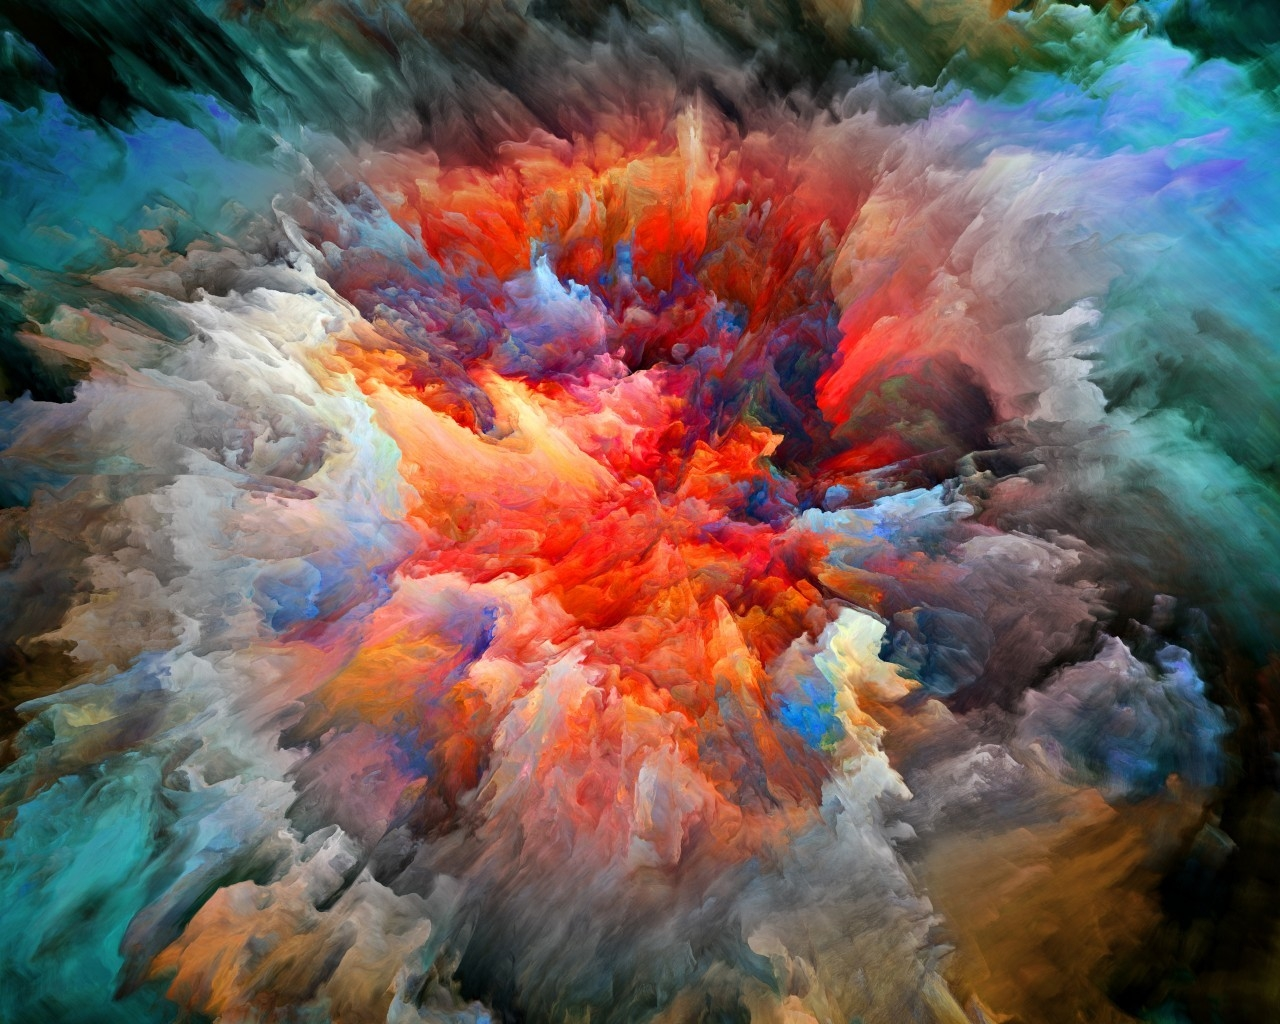 Explosion of Colors for 1280 x 1024 resolution